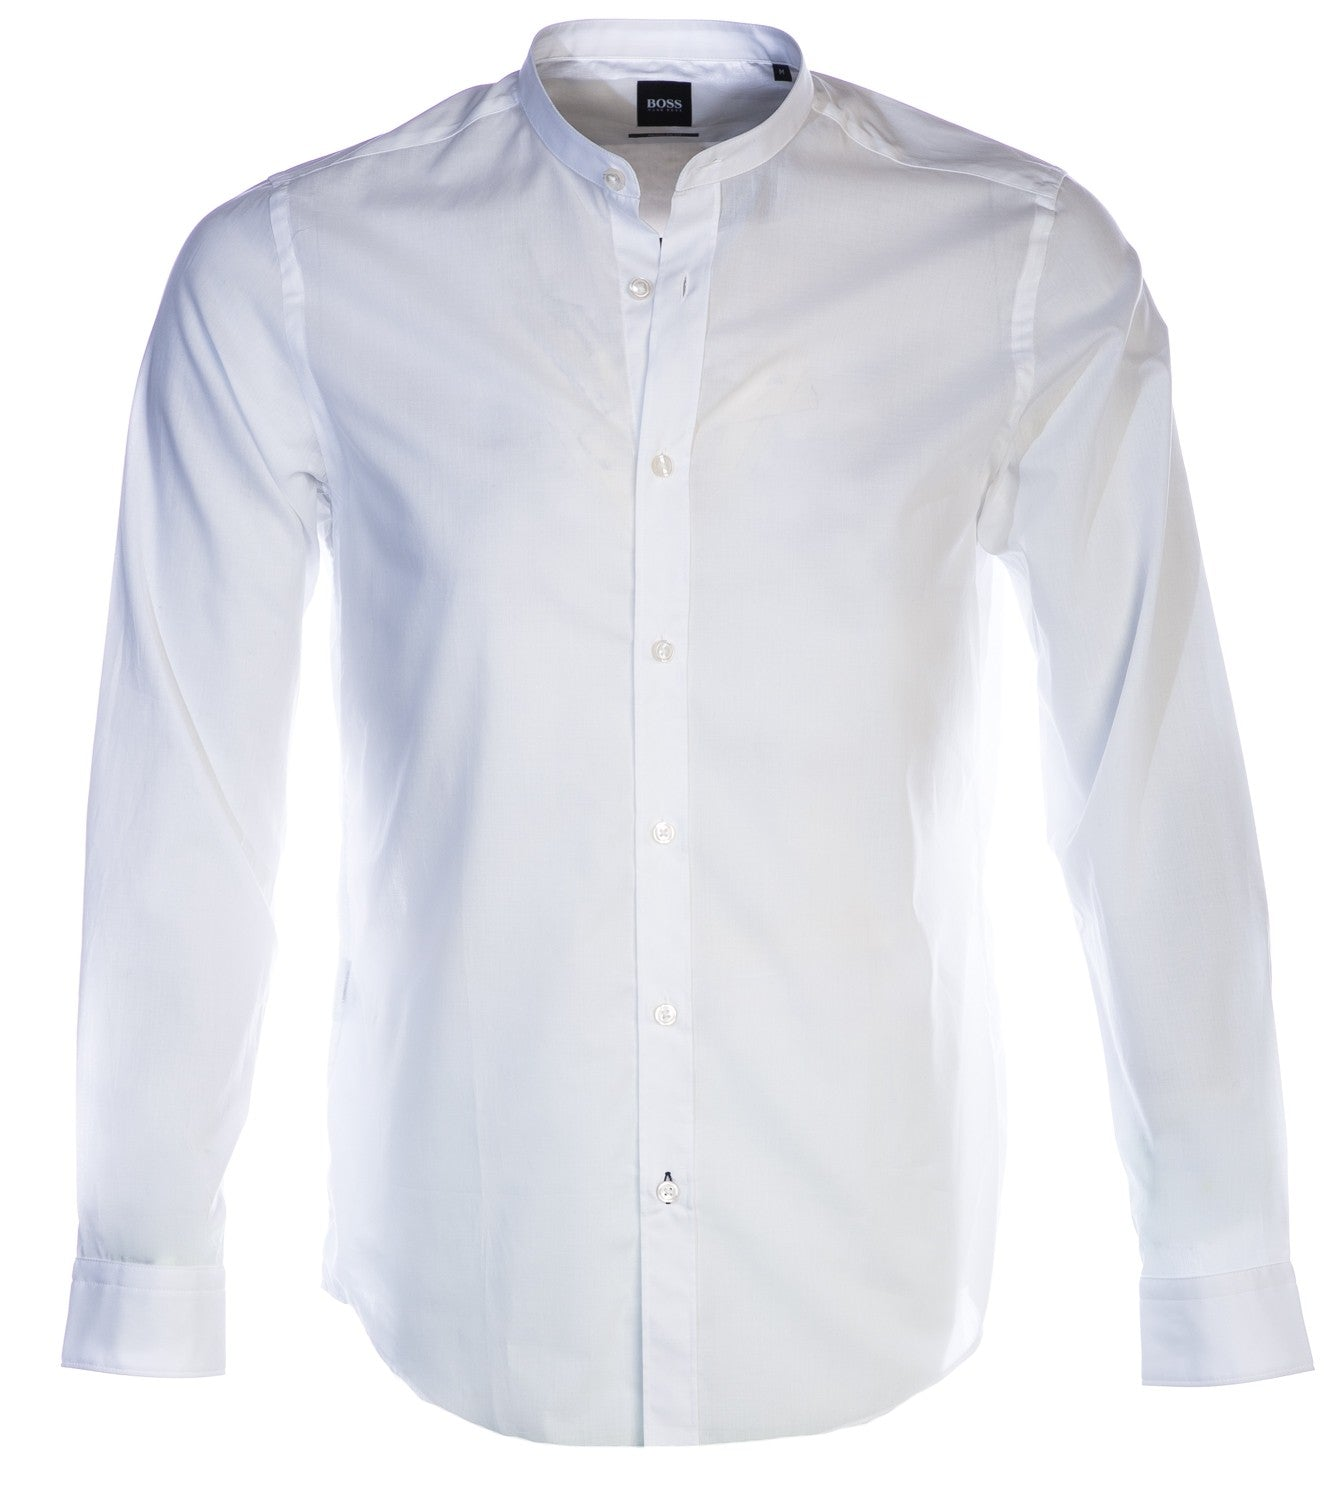 Hugo Boss - Lamberto - Regular Fit Band Collar Shirt in White